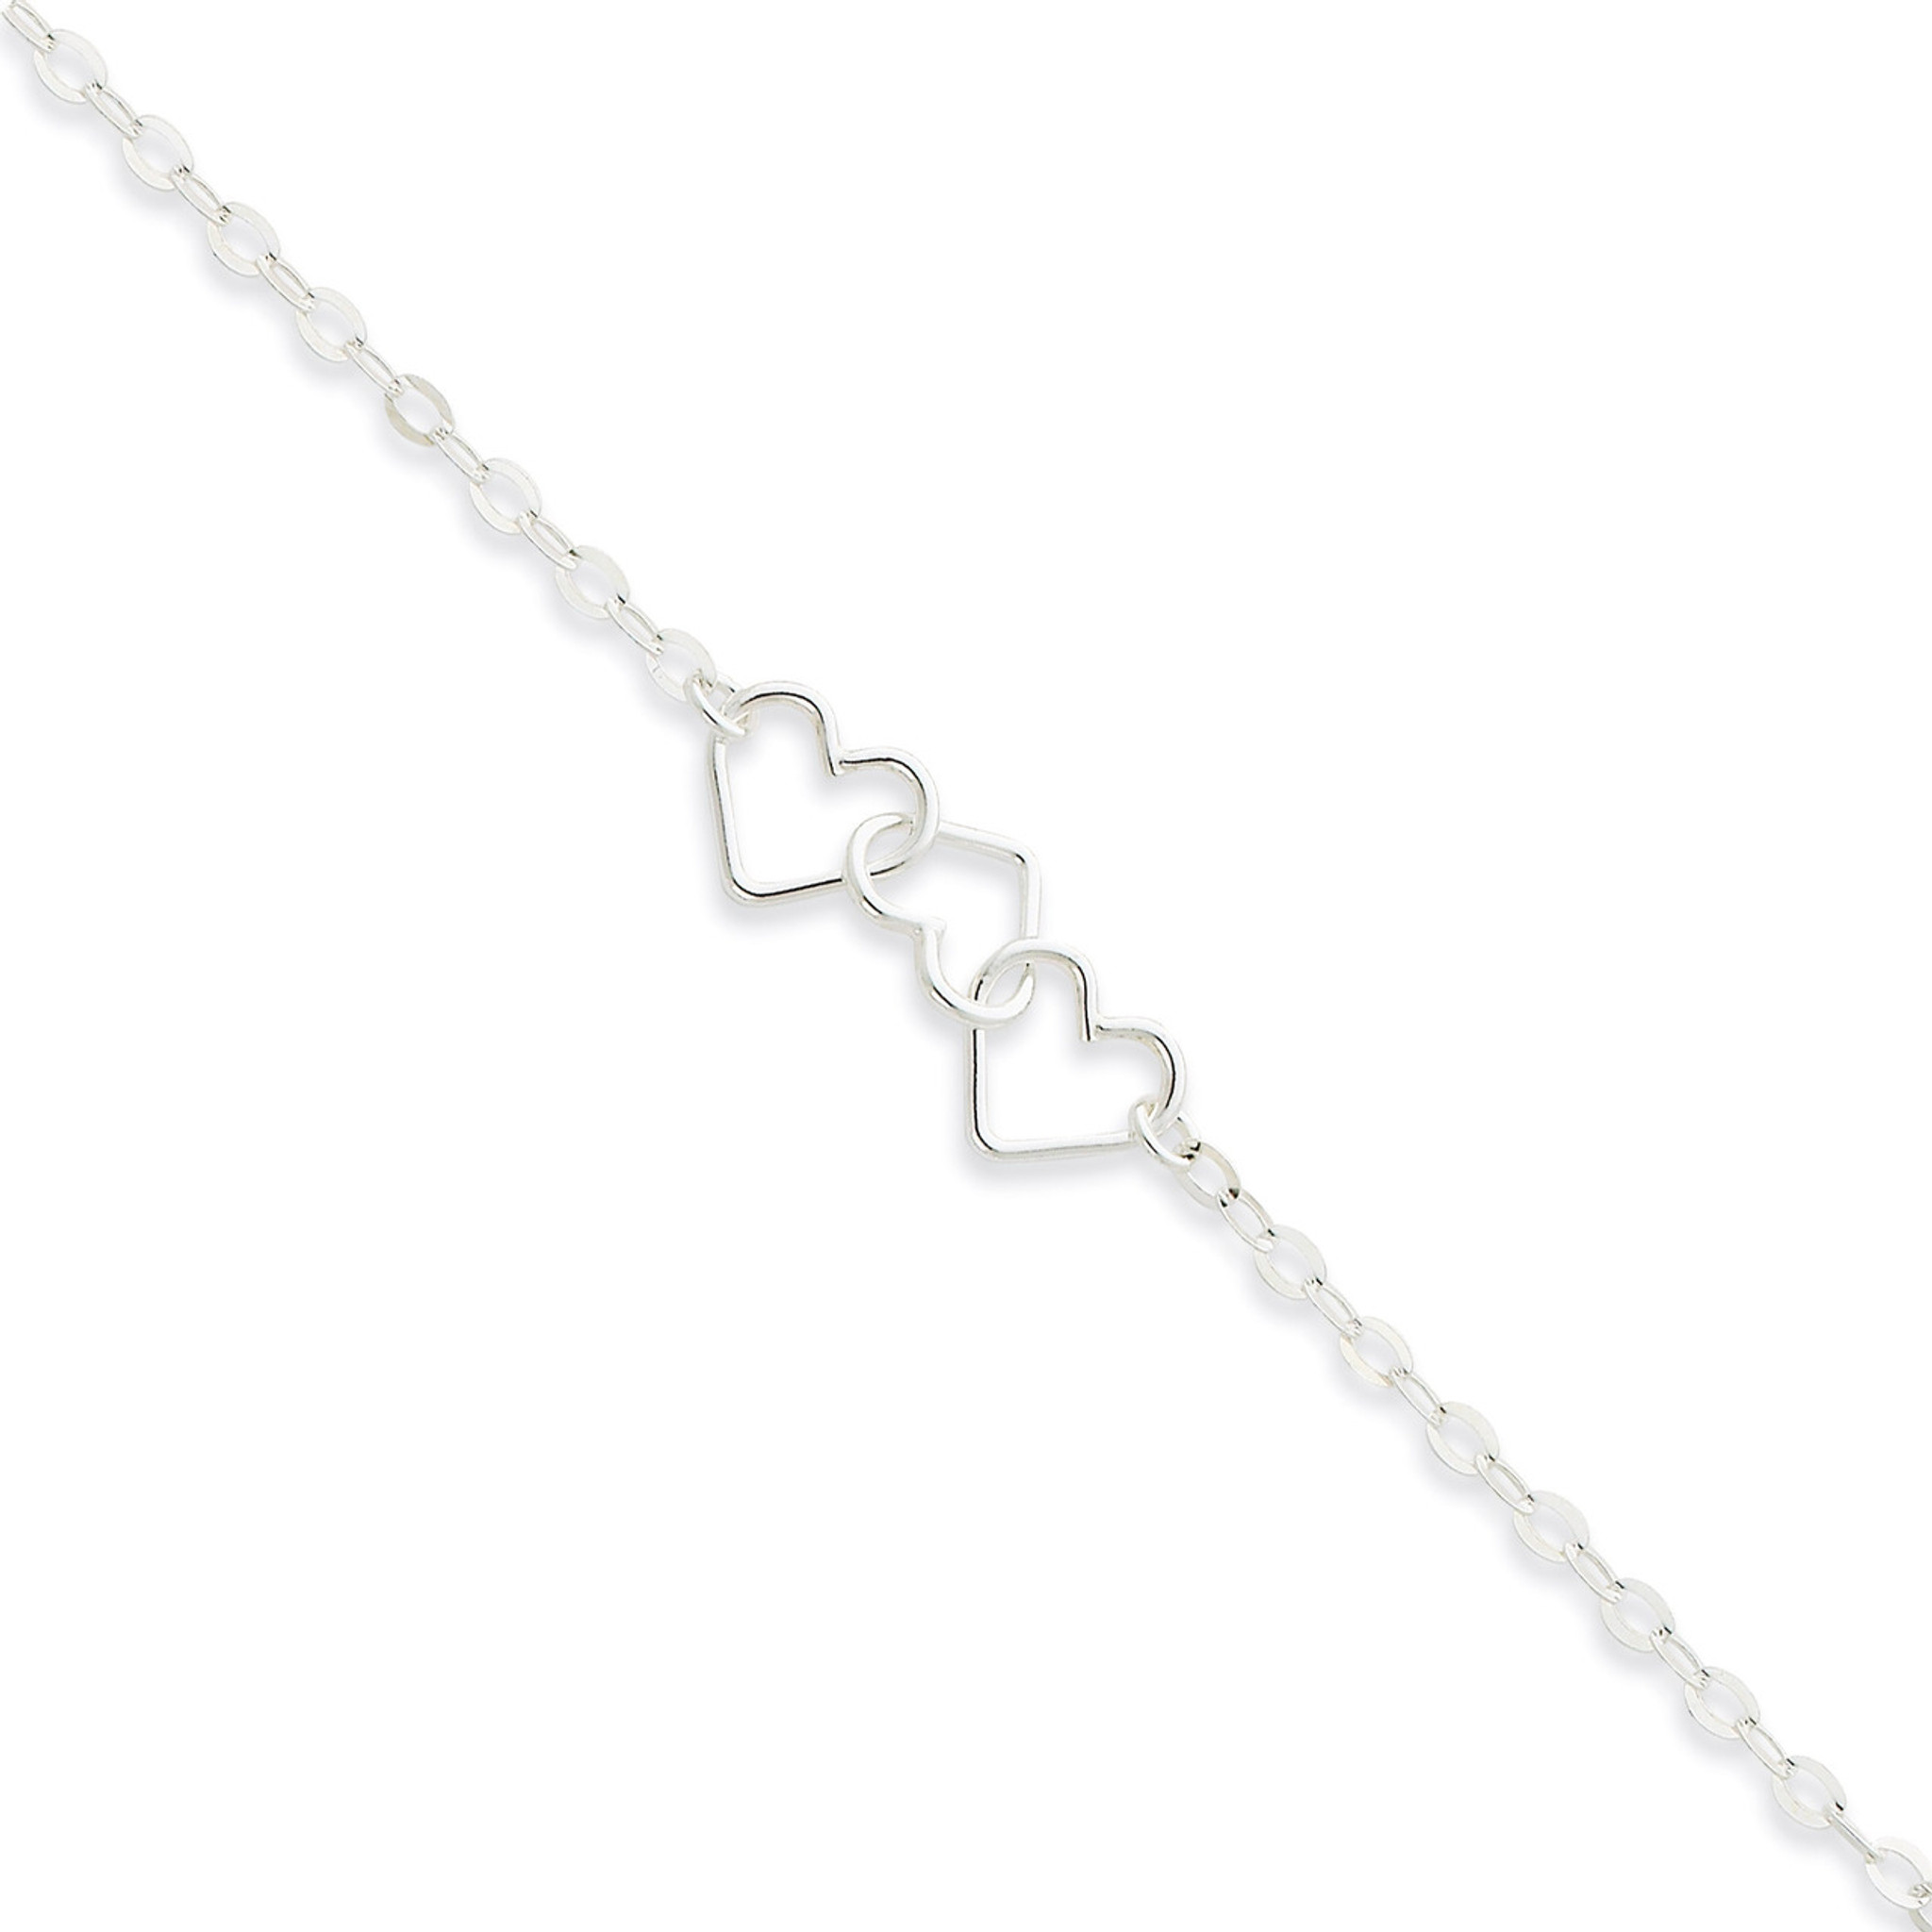 10 in Fancy Heart Link Anklet